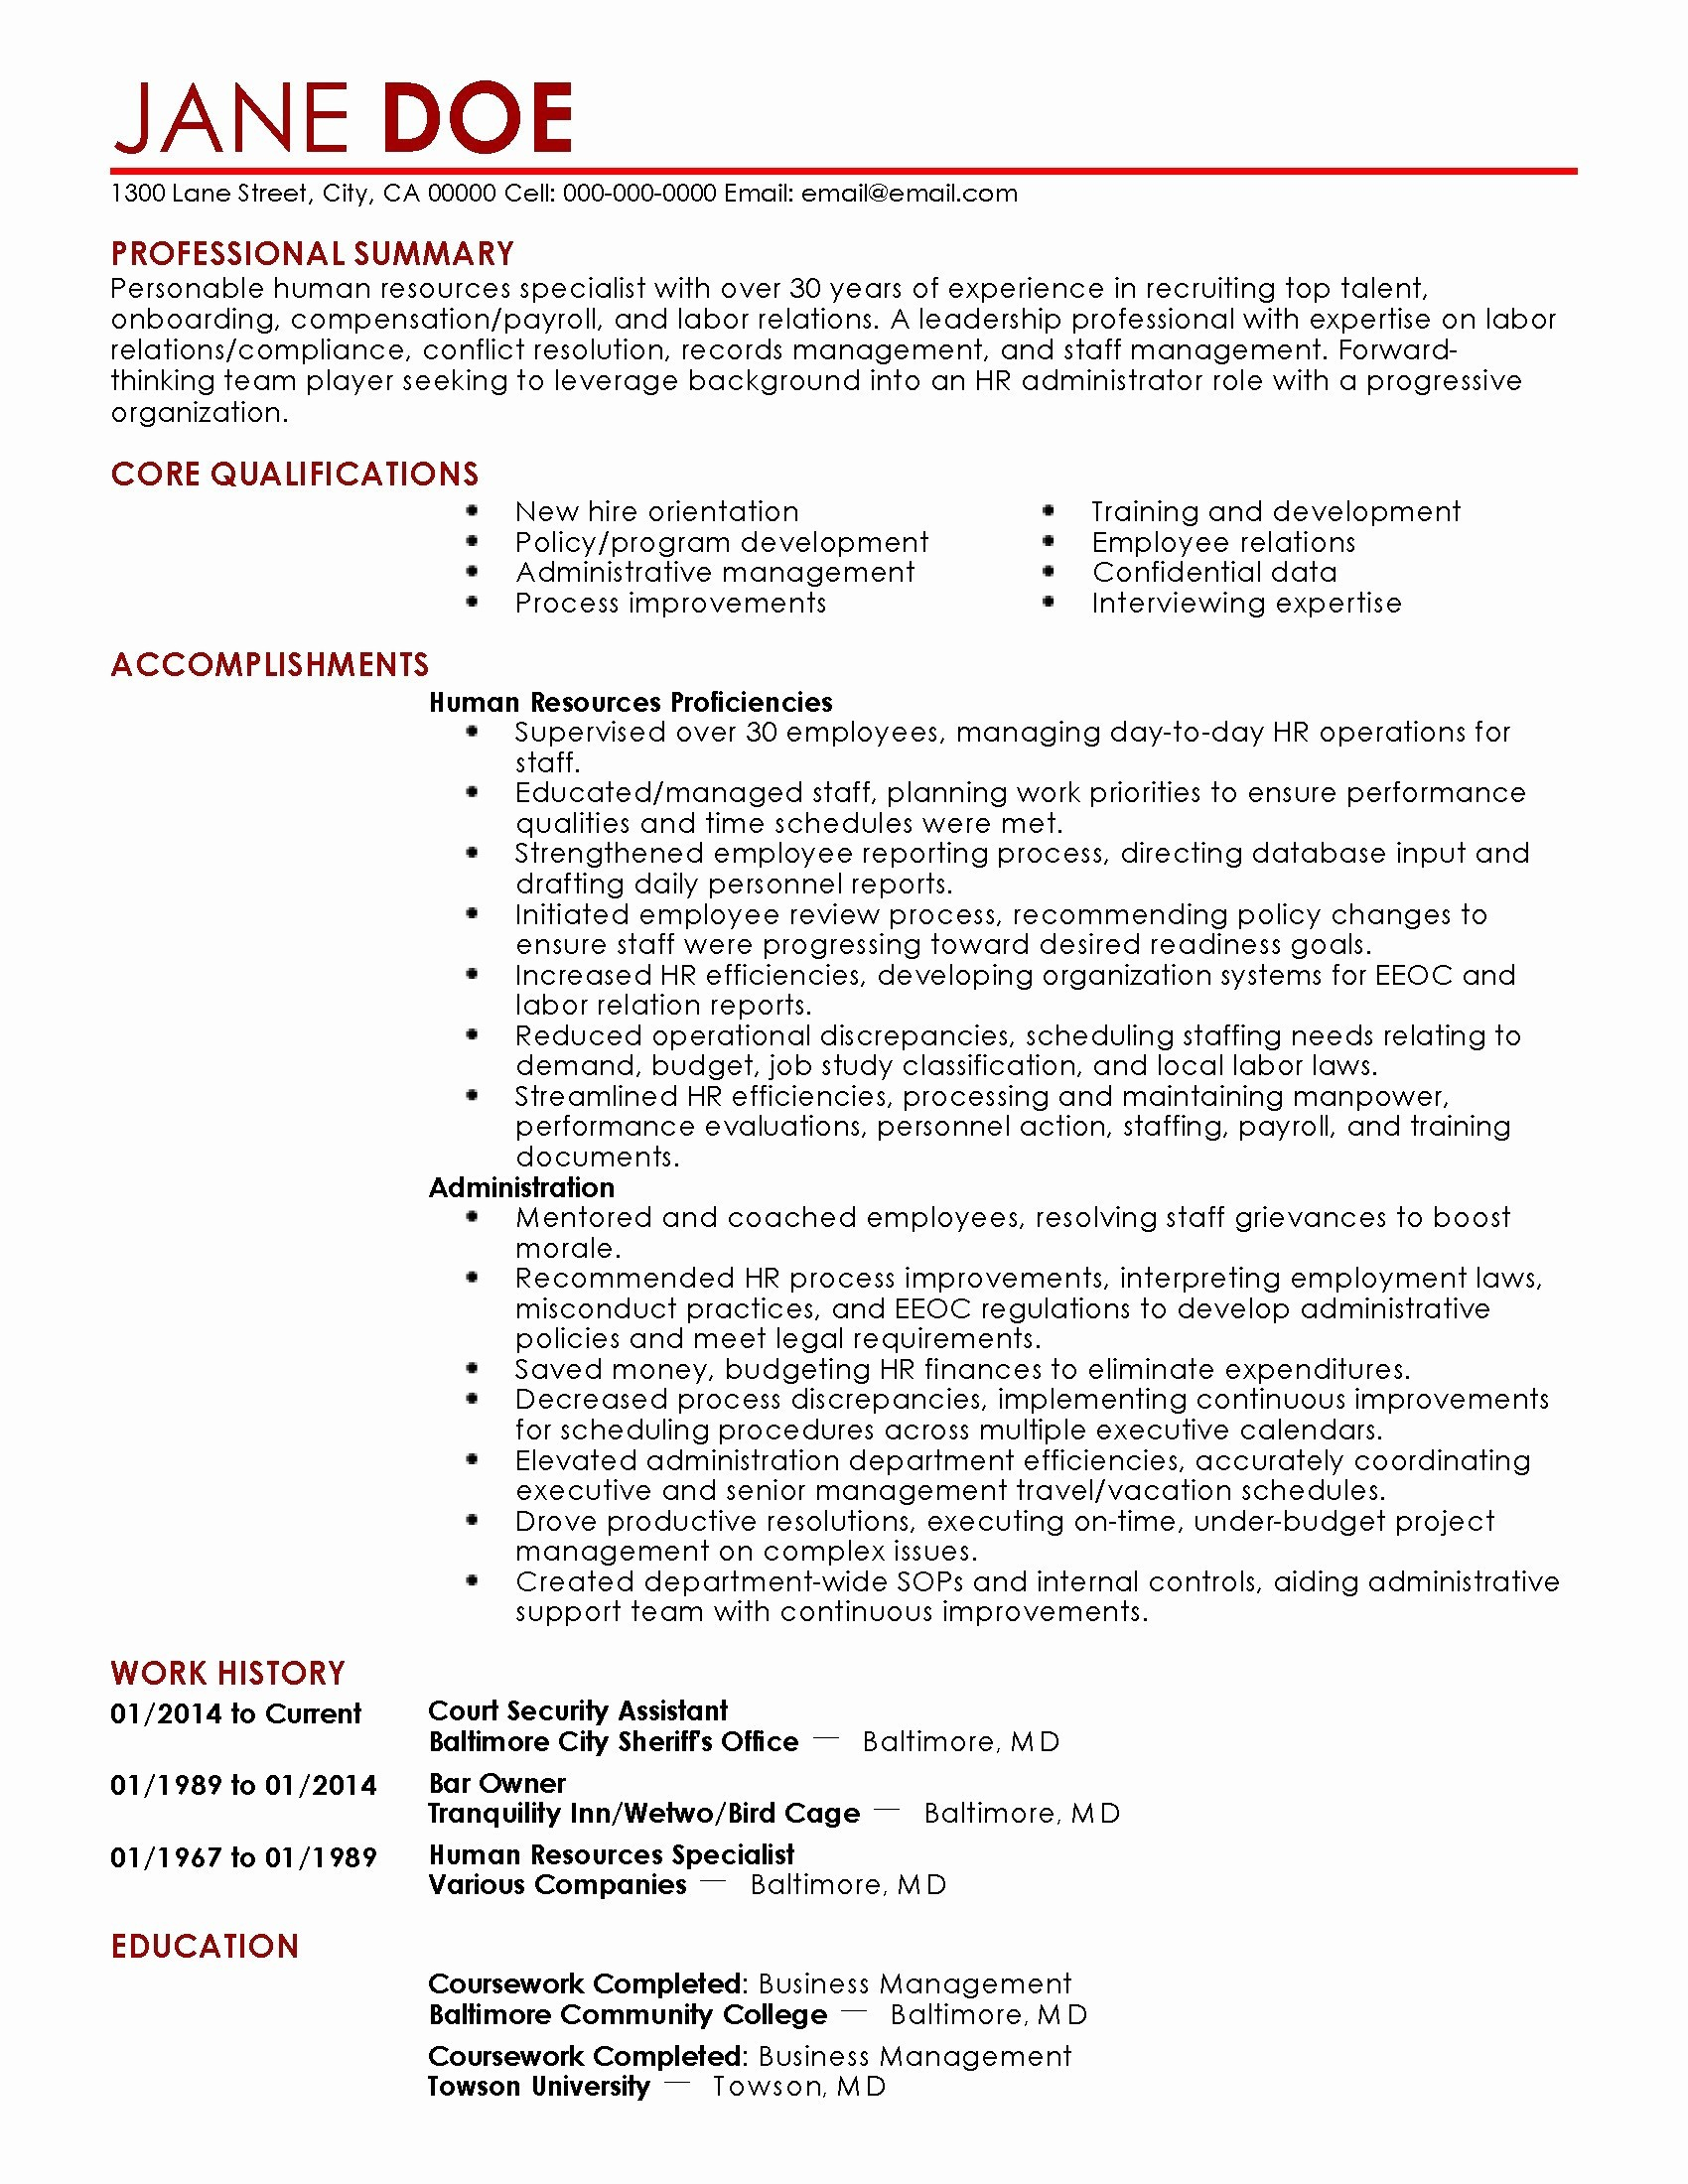 resume template for medical assistant example-Medical assistant resume template lovely medical assistant resumes new medical resumes 0d bizmancan 1-n